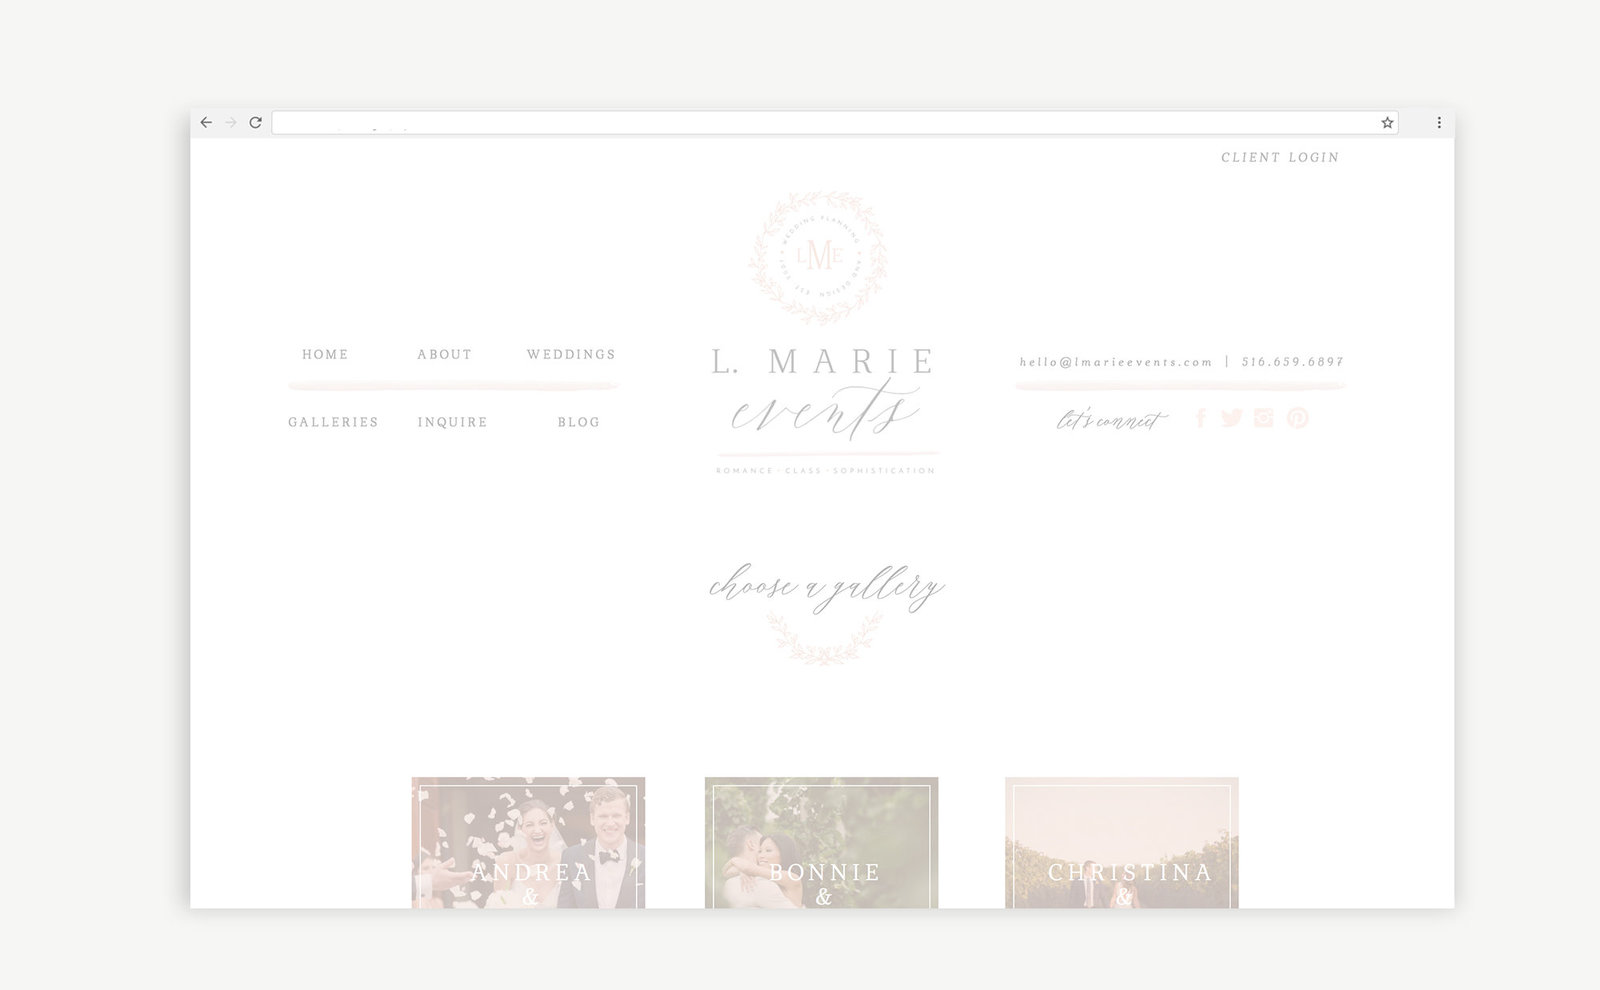 long-island-wedding-planner-website-showit5-04